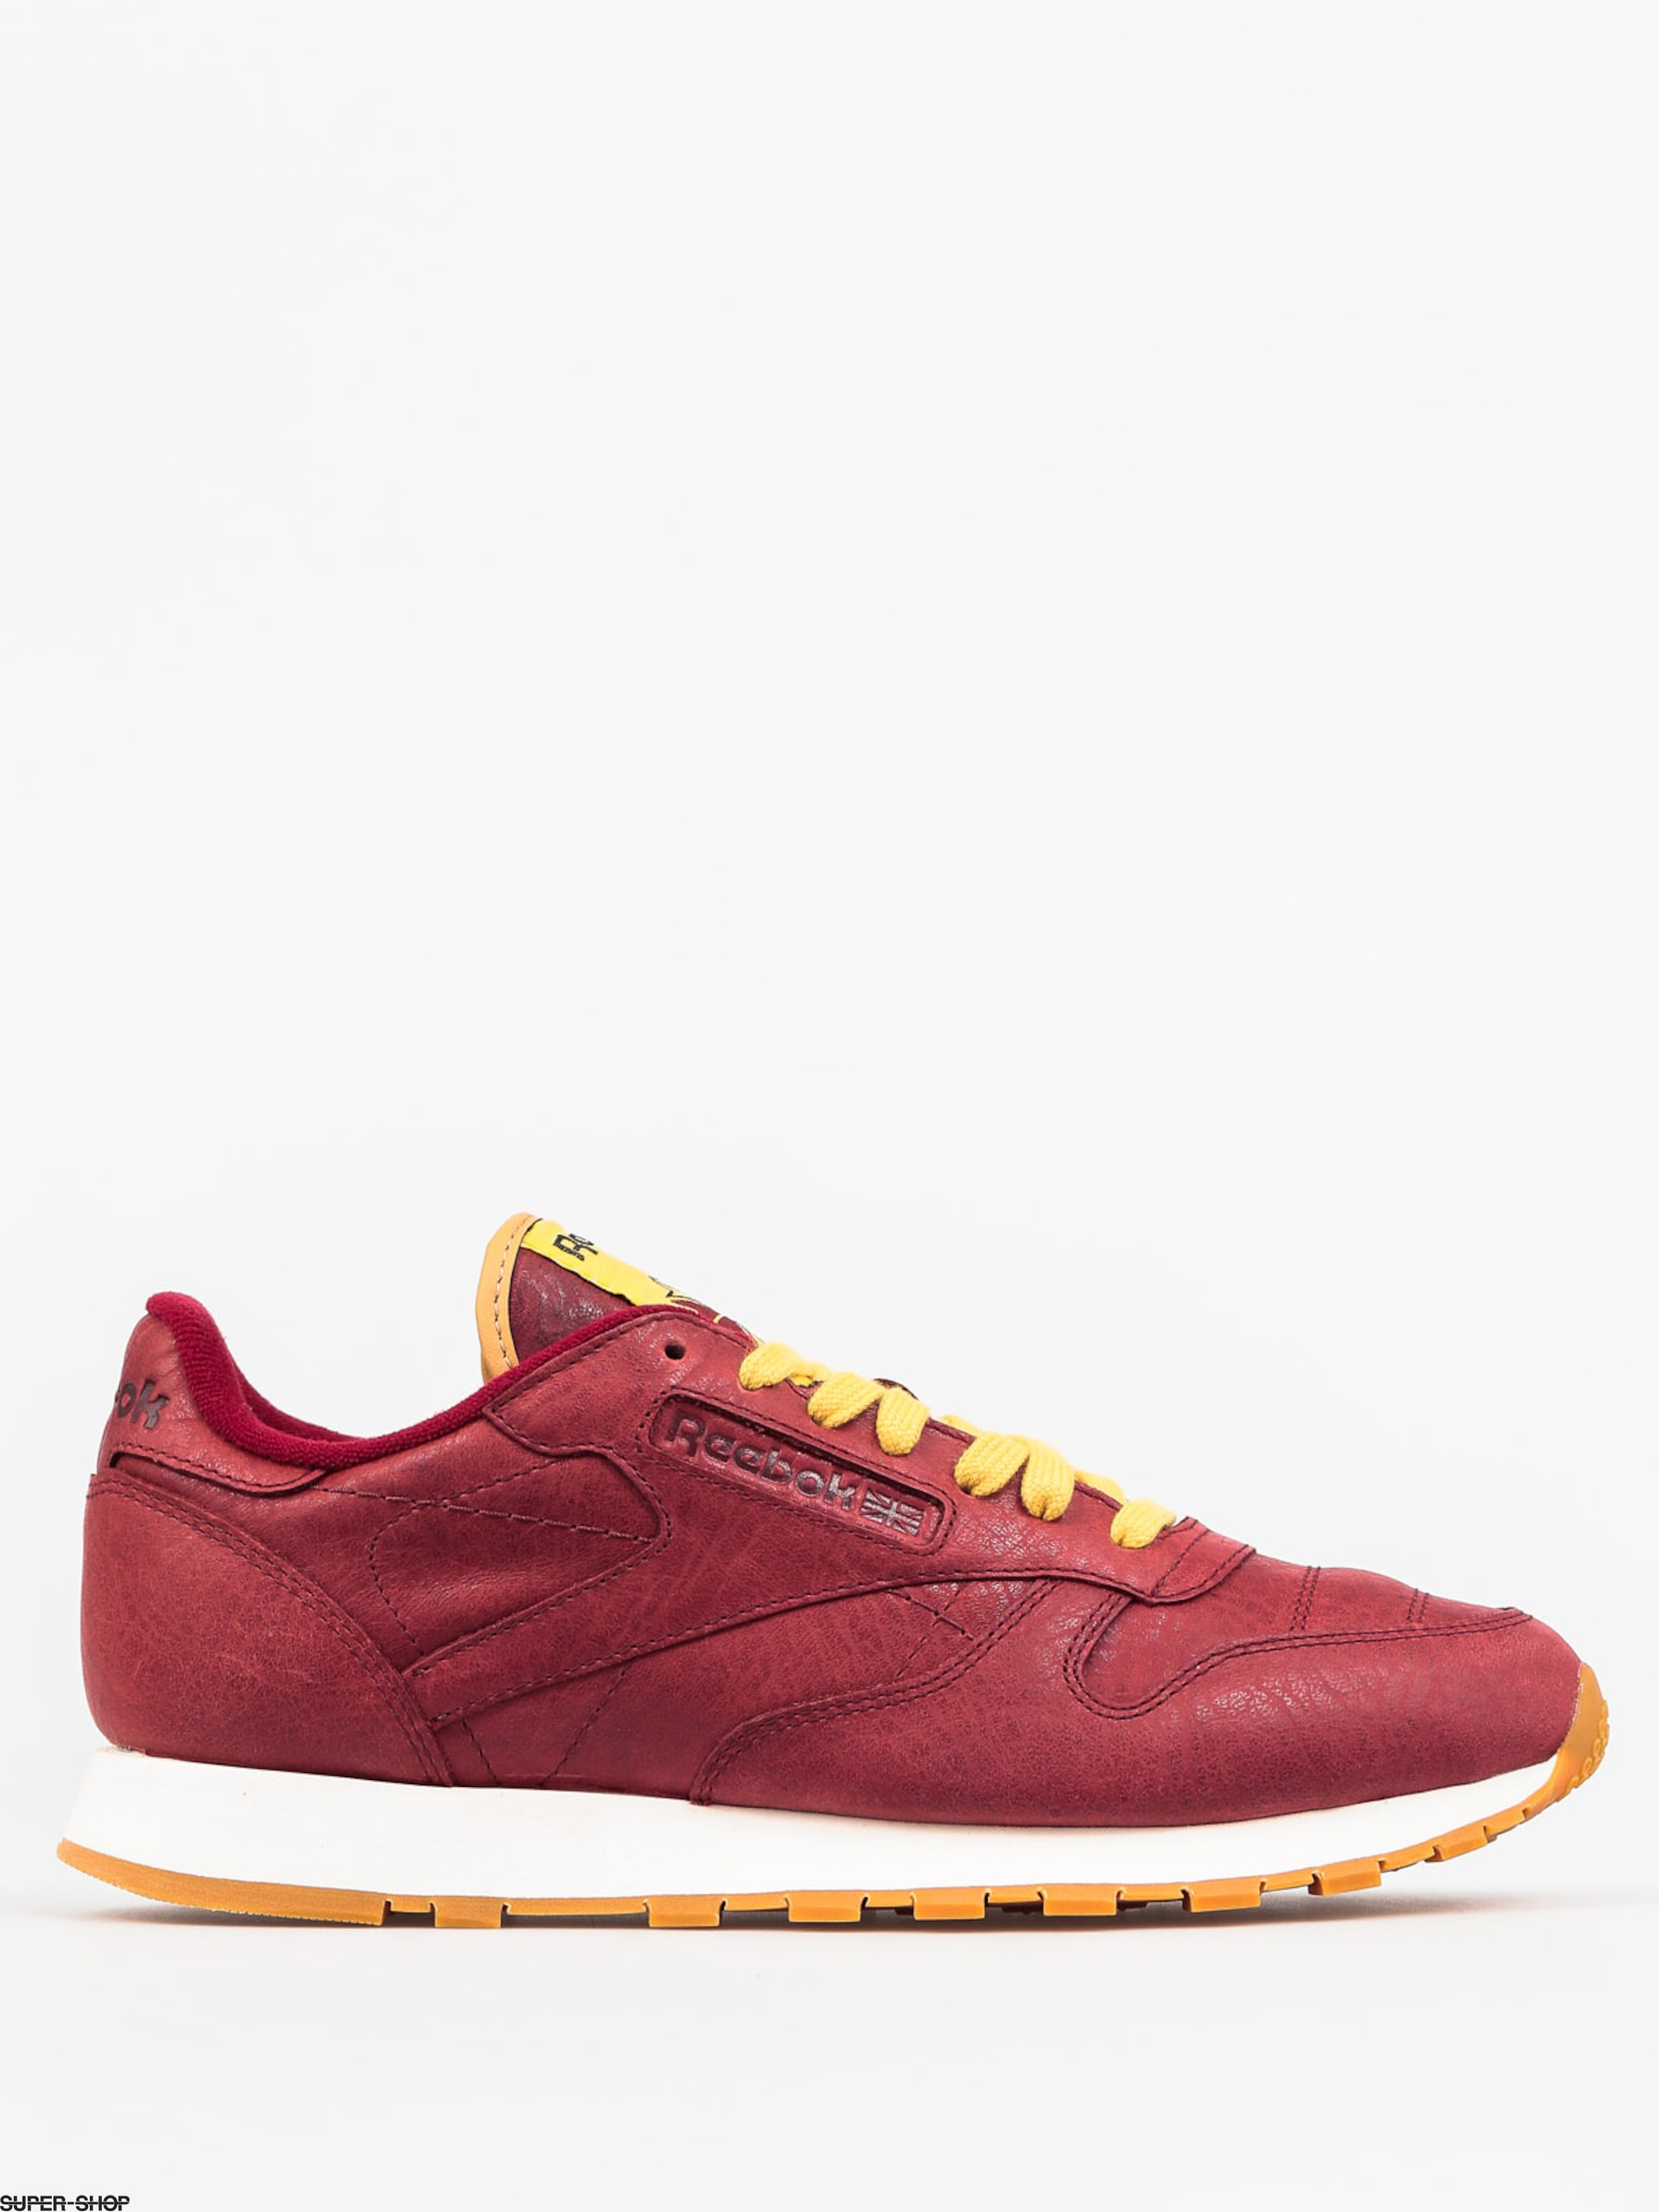 ceeac3dfff6 Reebok Shoes Classic Leather Boxing (rugged maroon chalk gum)